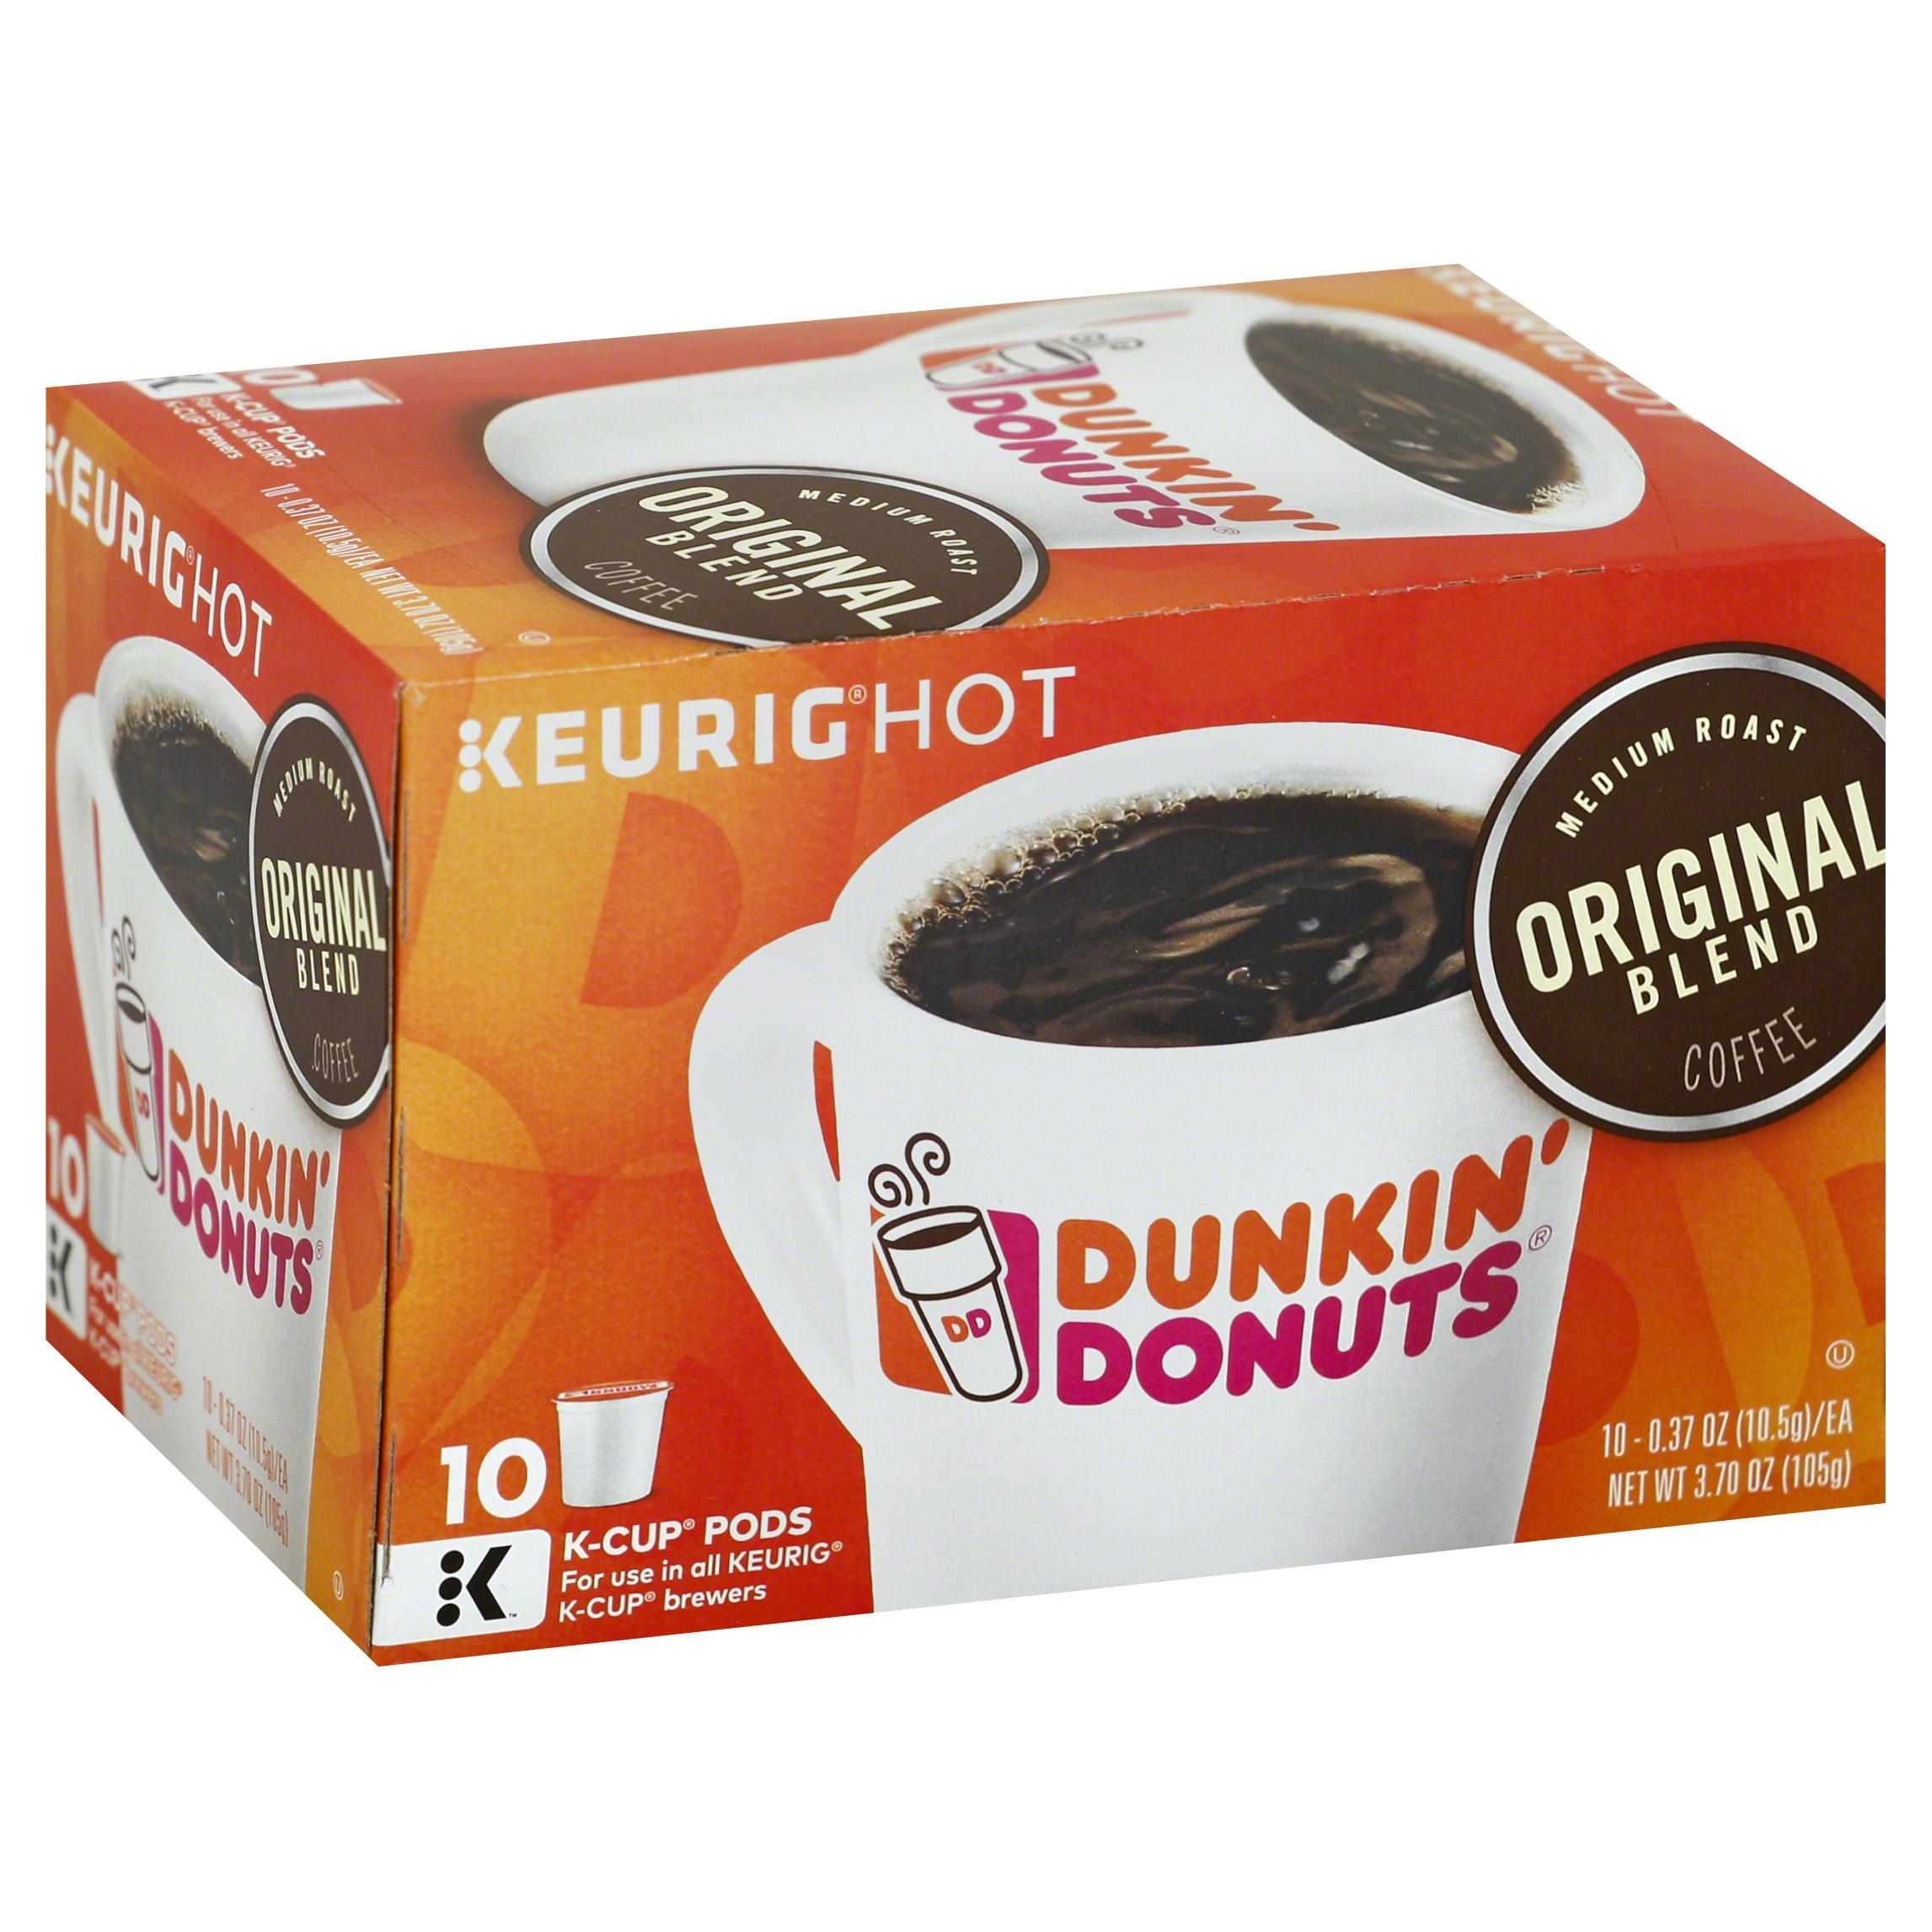 Dunkin' Donuts Original Blend Coffee for K-cup Pods, Medium Roast, For Keurig Brewers, 60 Count by Dunkin' Donuts